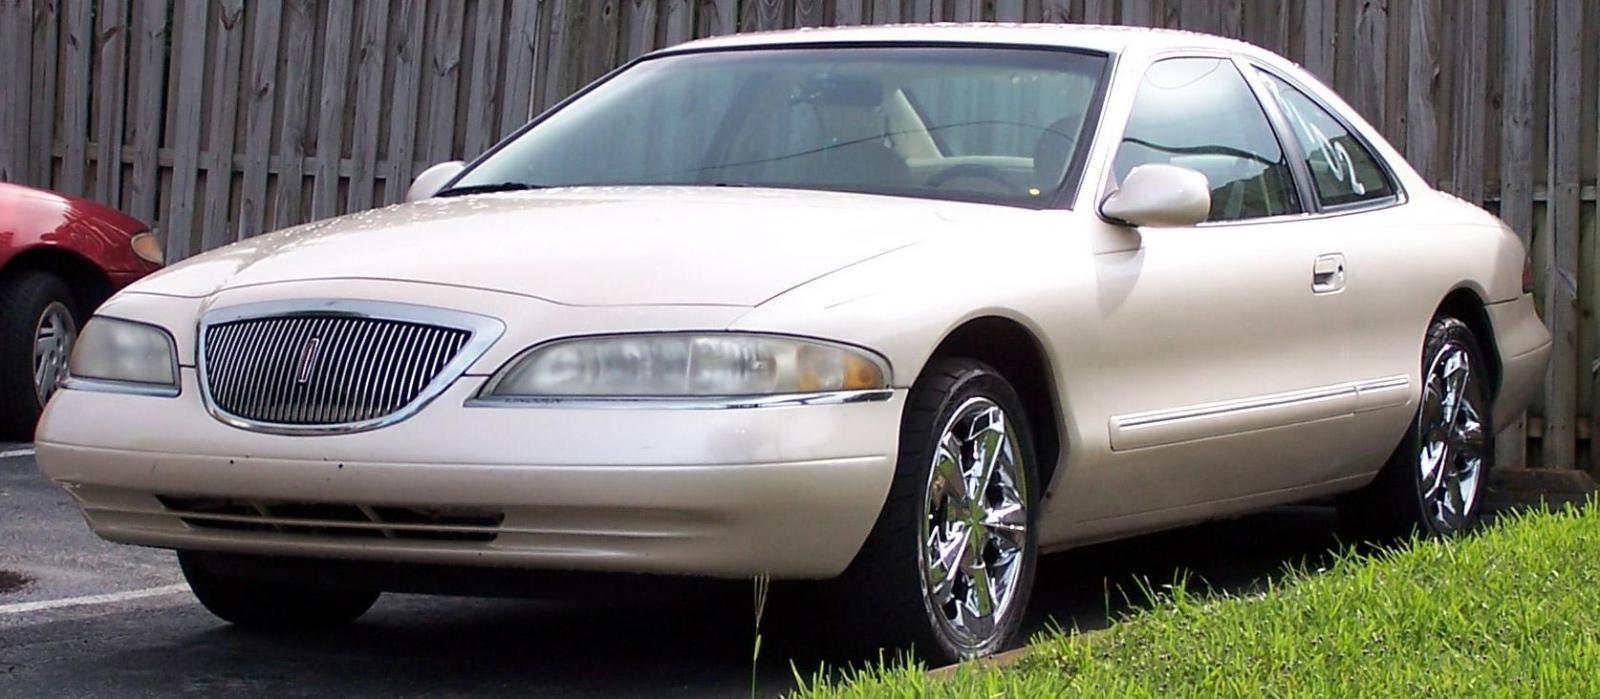 1998 Lincoln Mark Viii - Information And Photos